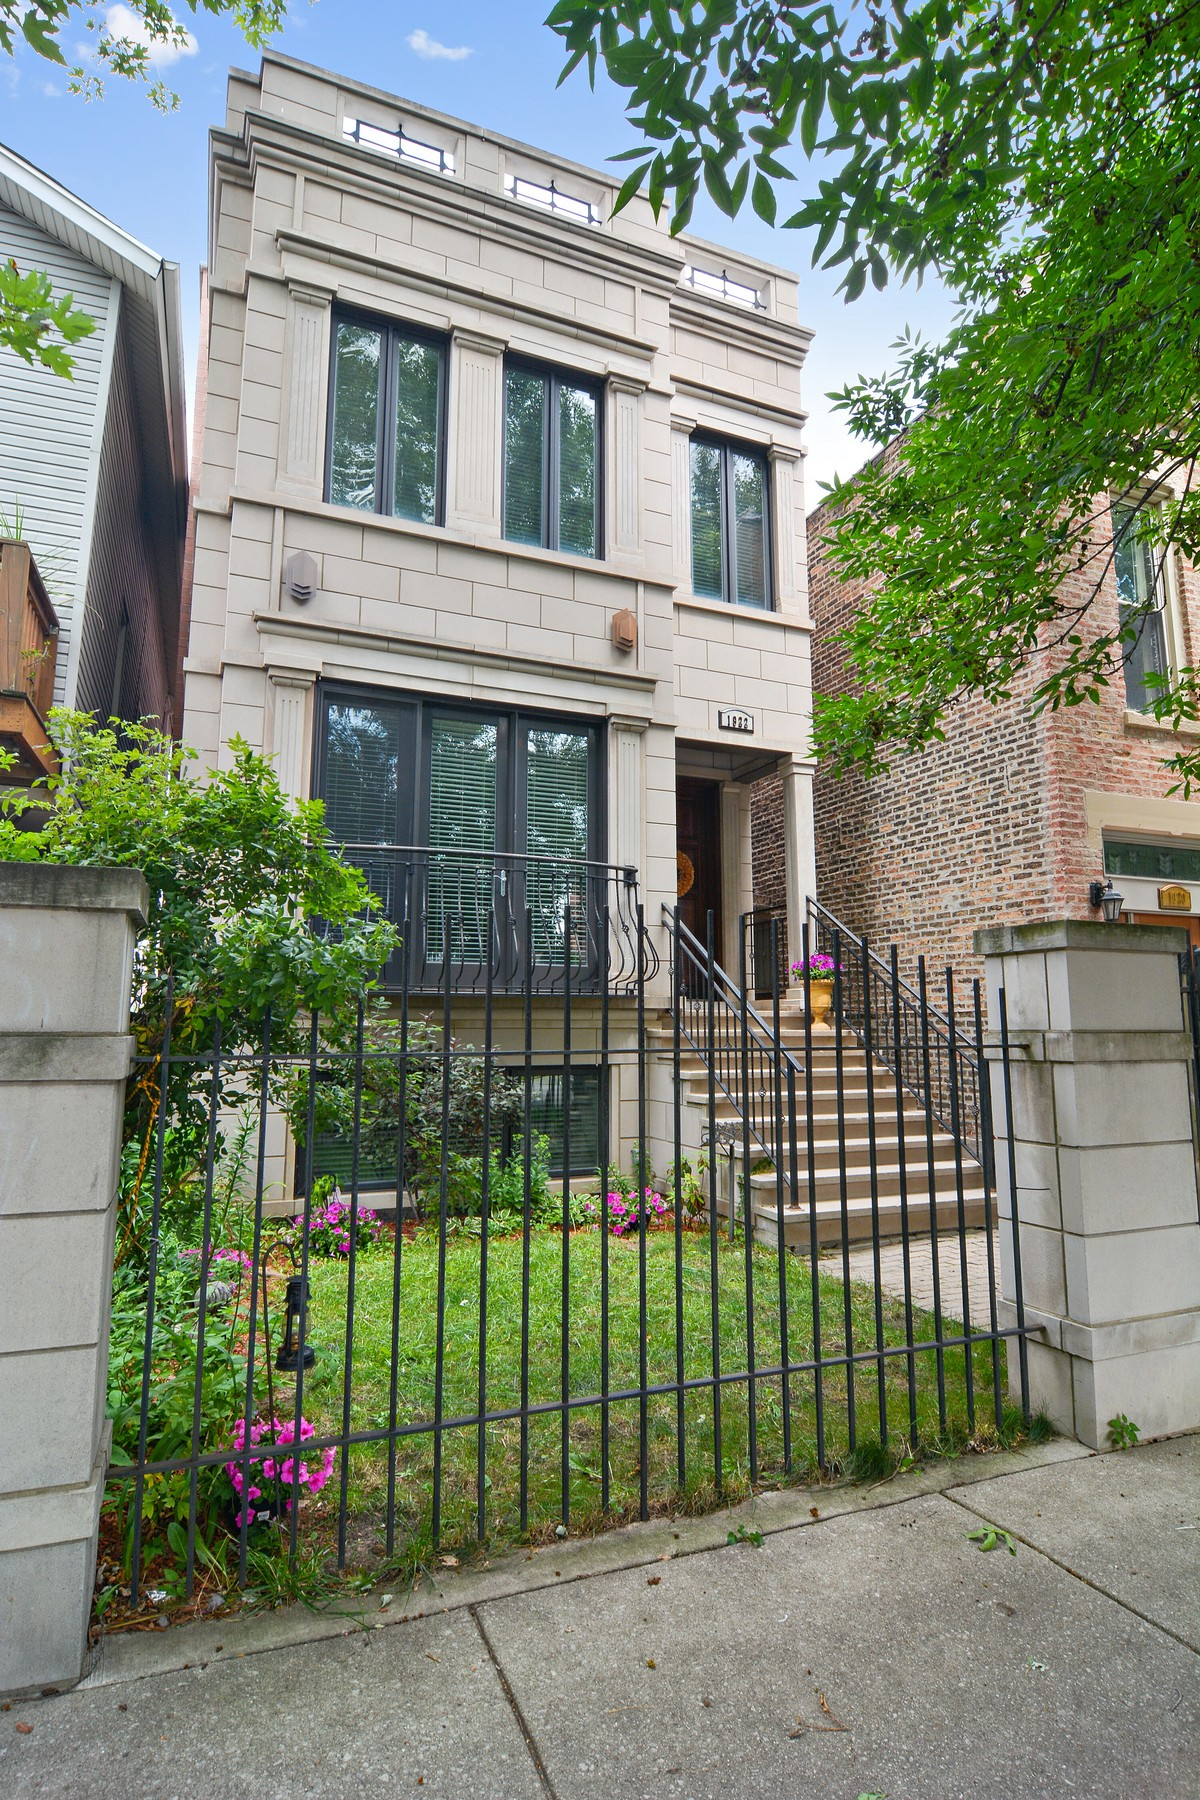 Single Family Home for Sale at Gorgeous Traditional Greystone 1922 W Ohio Street Chicago, Illinois 60622 United States